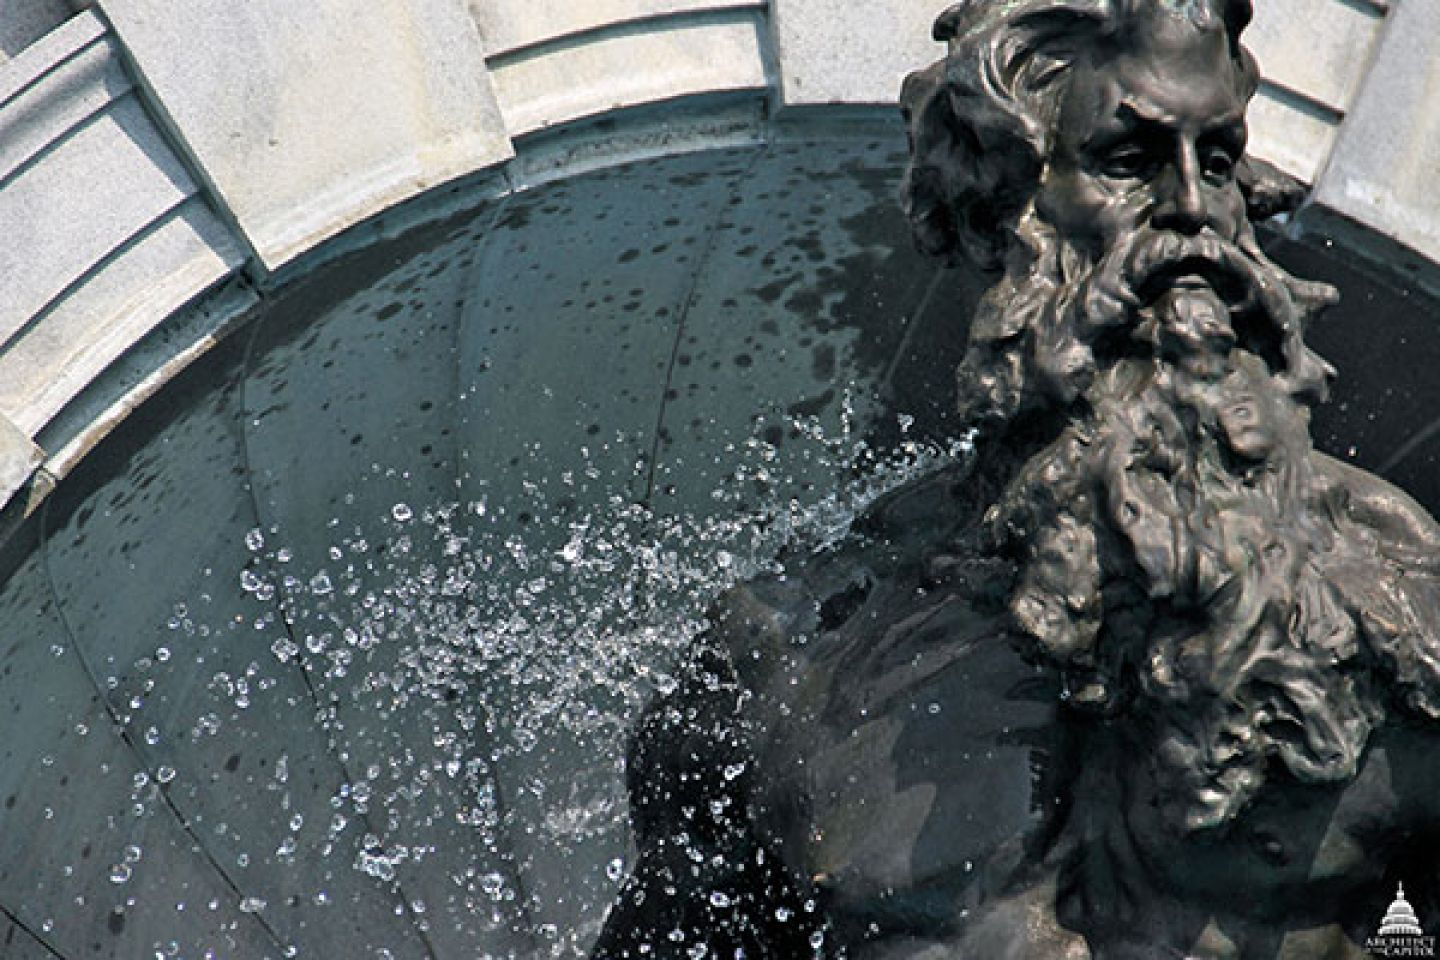 Detailed look at the Neptune sculpture element of the fountain at the Thomas Jefferson Building in Washington, D.C.